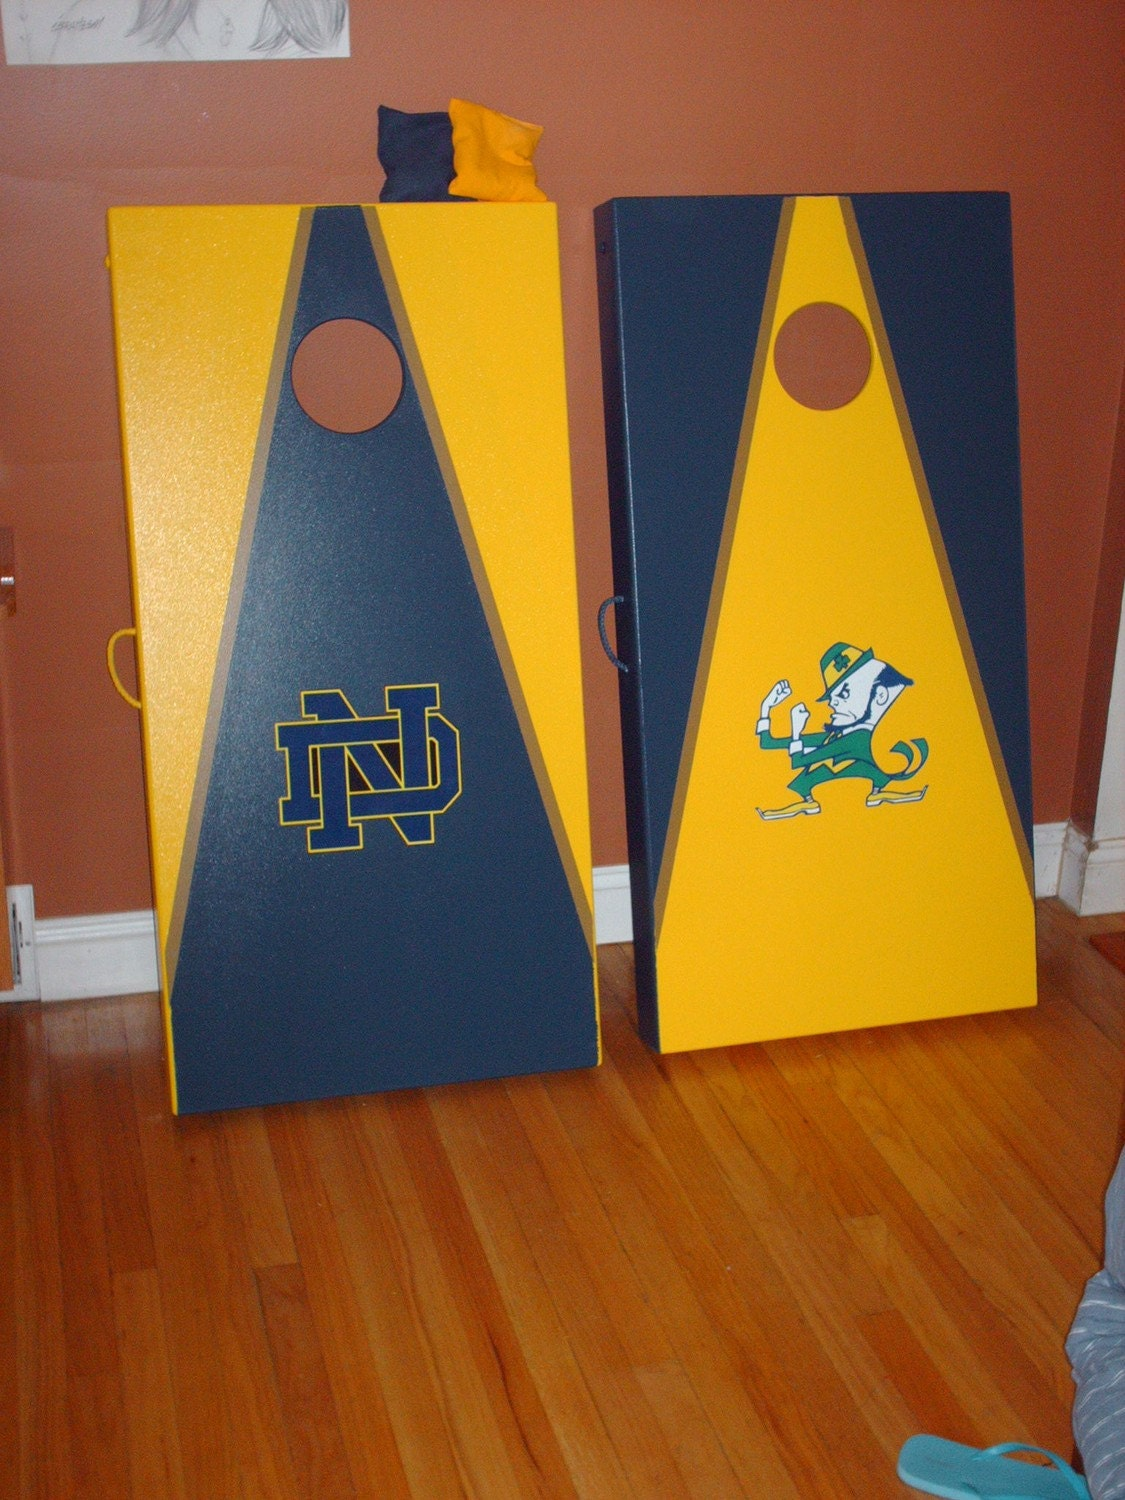 post your corn hole board ideadesign archive irish envy notre dame football discussion - Cornhole Design Ideas